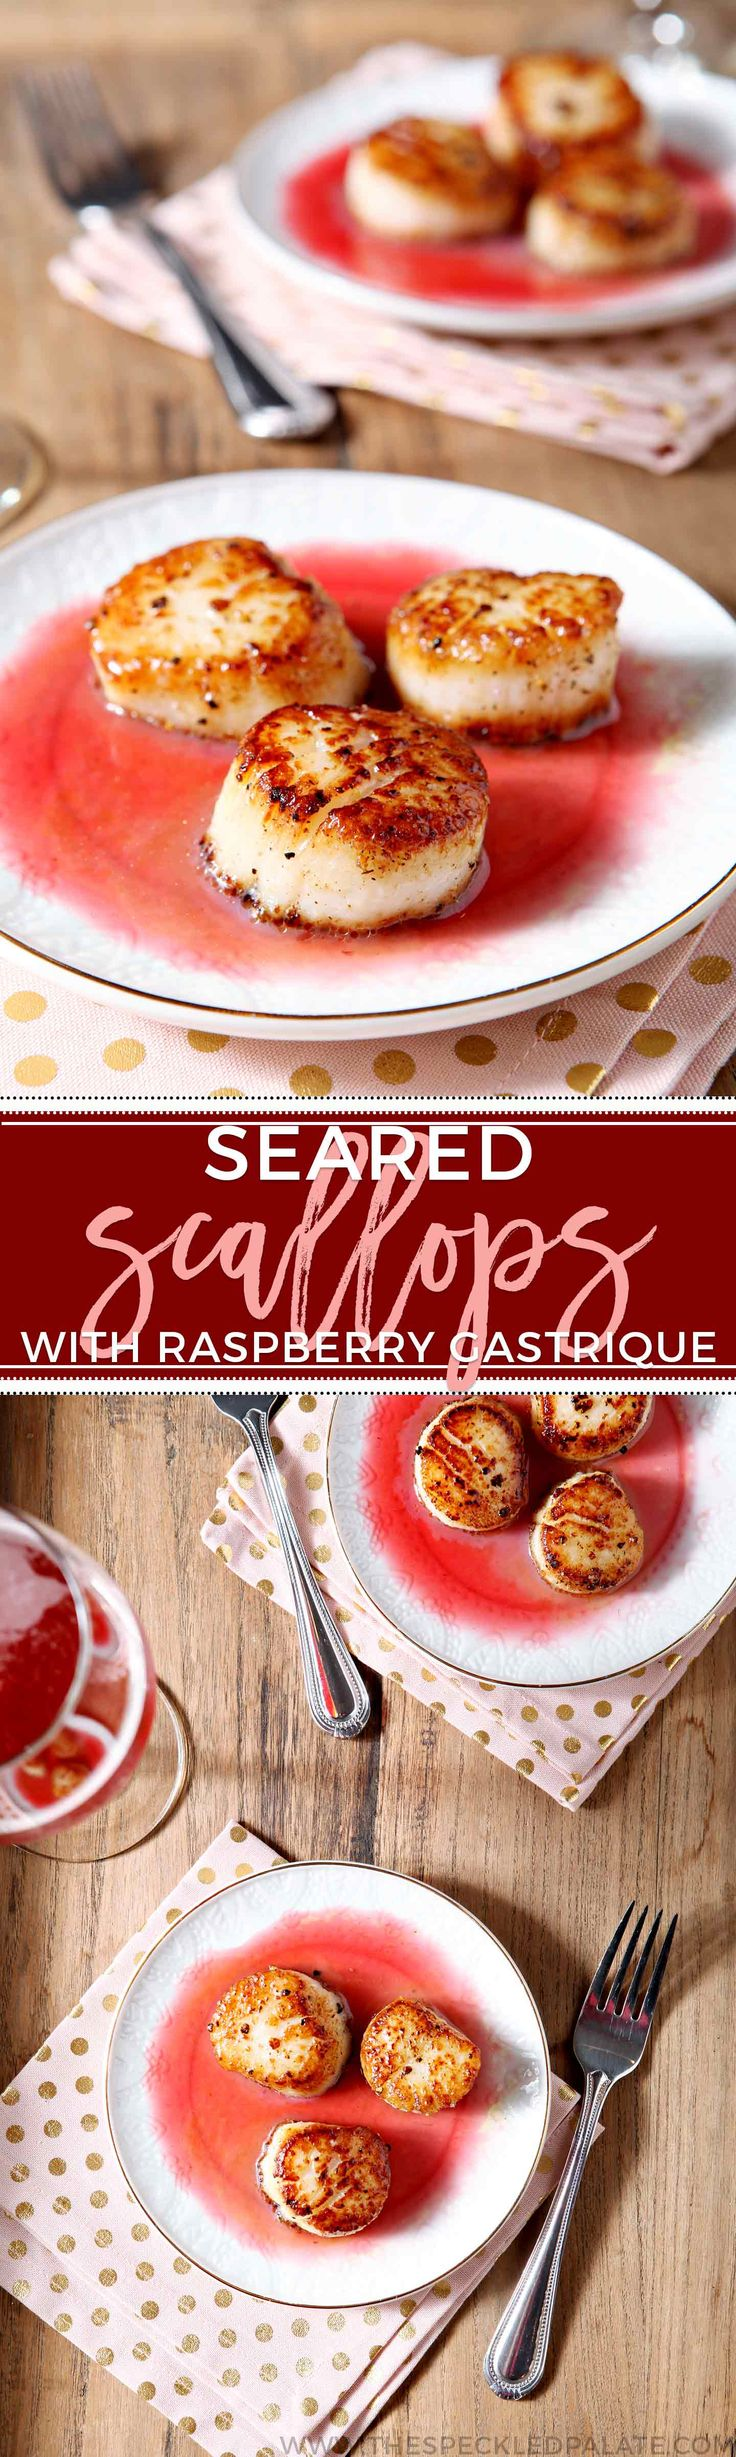 Elevate your romantic, at-home date night by serving Seared Scallops with Raspberry Gastrique! via @speckledpalate